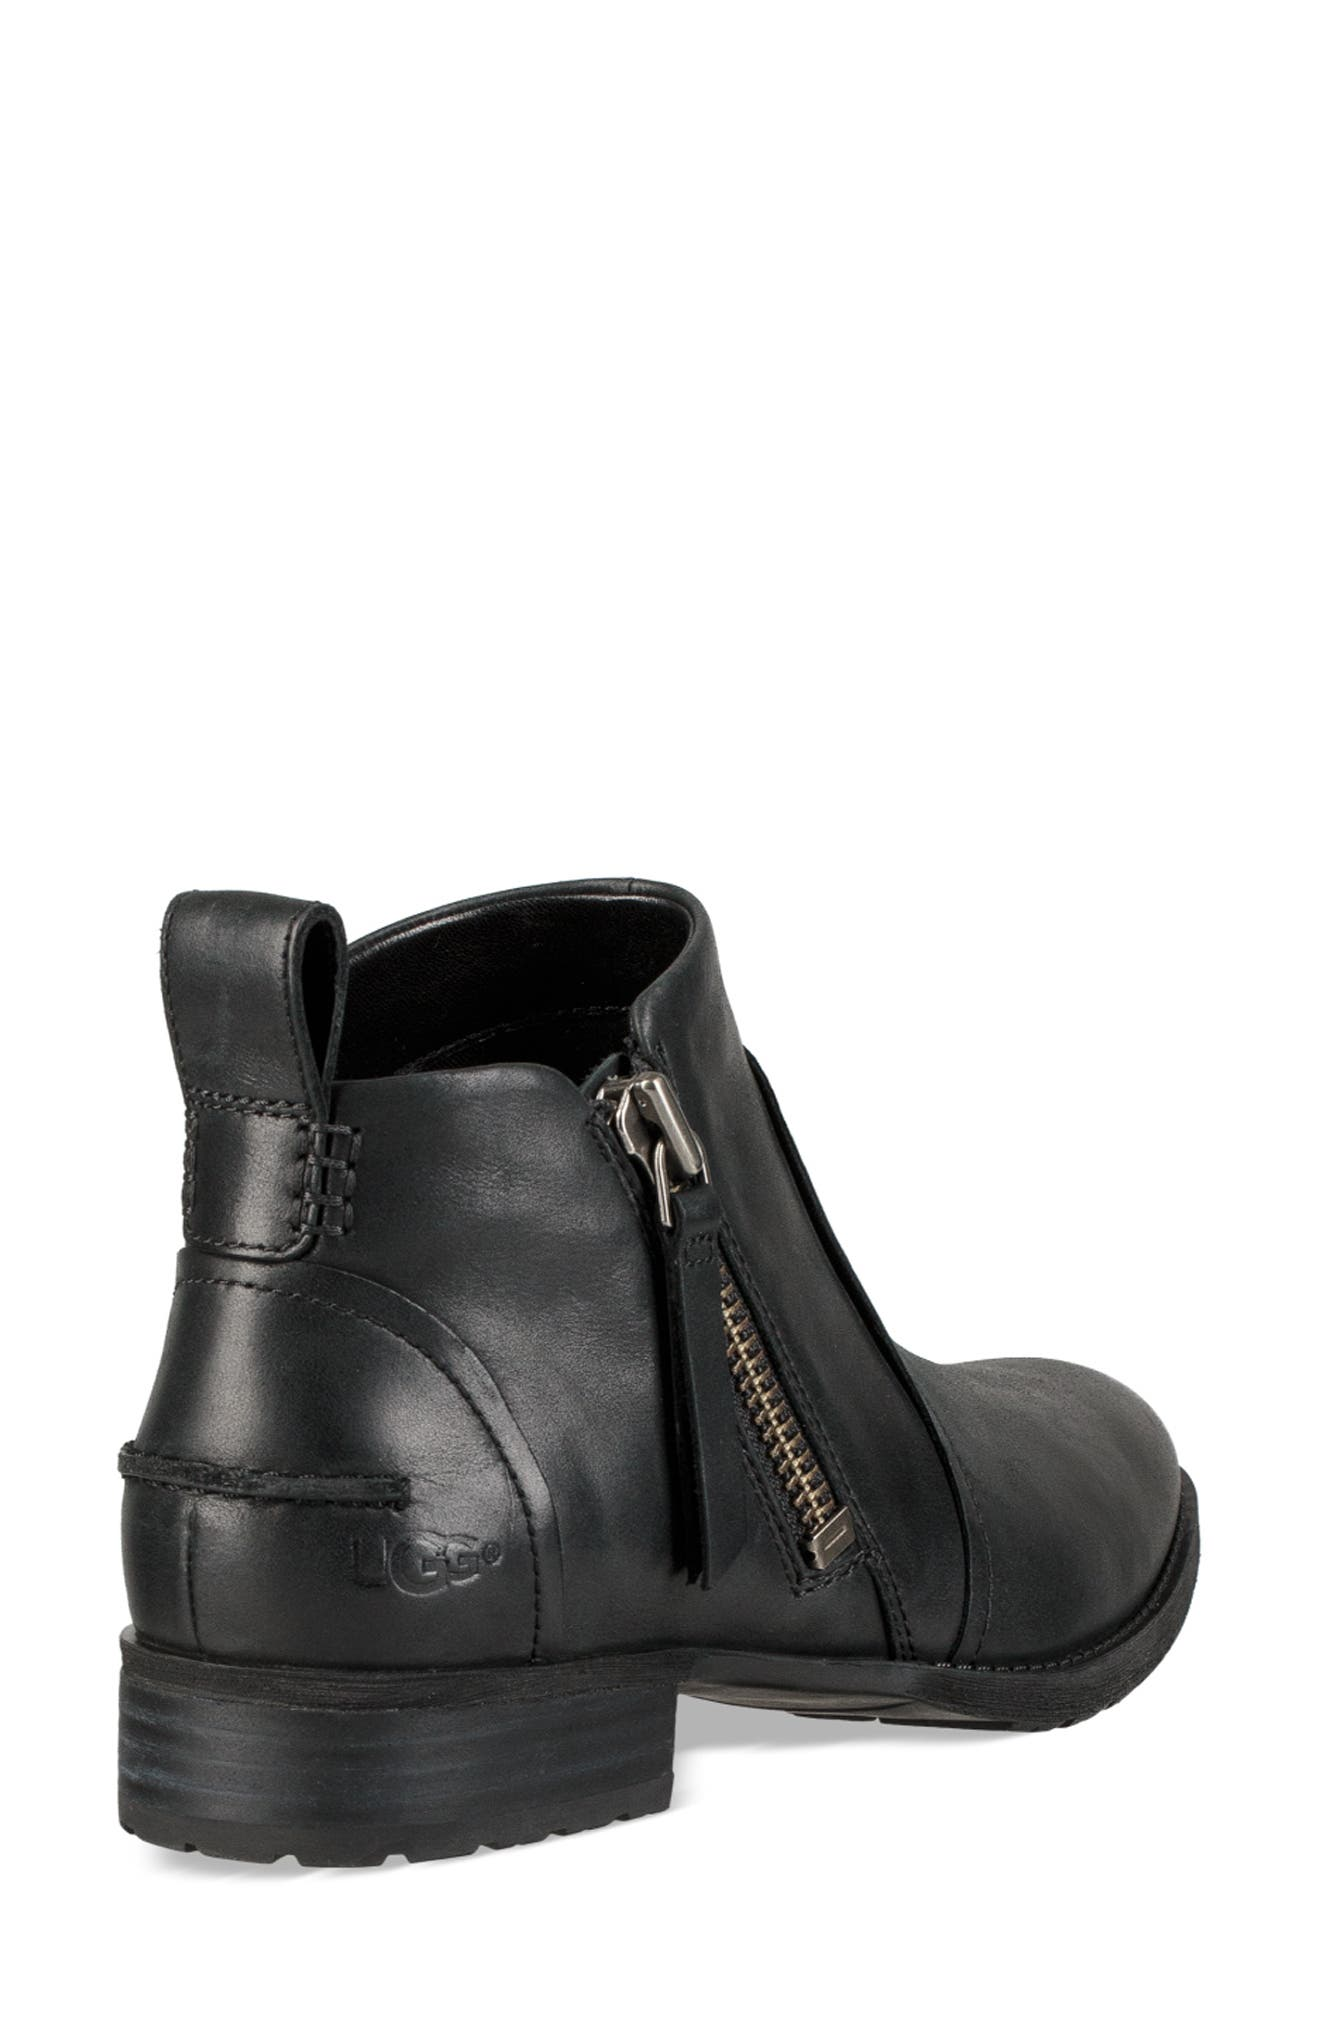 UGG<SUP>®</SUP>, Aureo Bootie, Alternate thumbnail 2, color, BLACK/ BLACK LEATHER